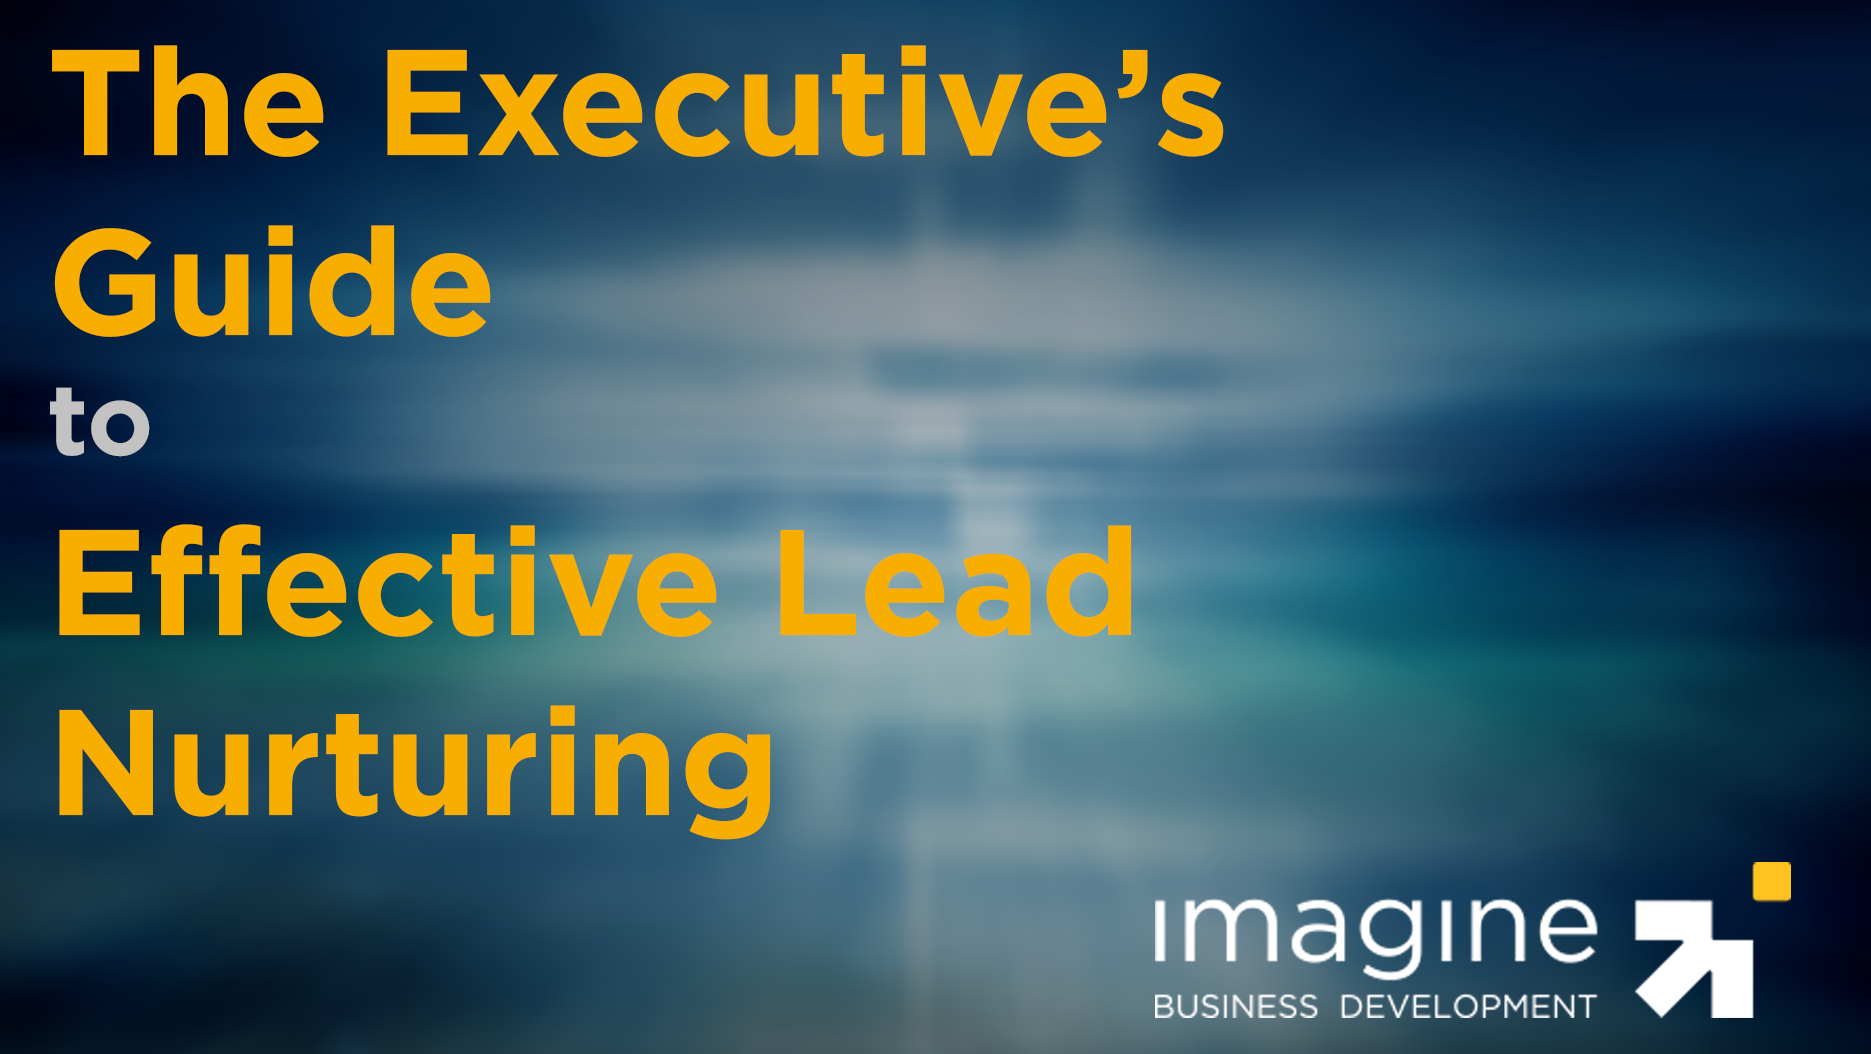 Executive's Guide to Effective Lead Nurturing